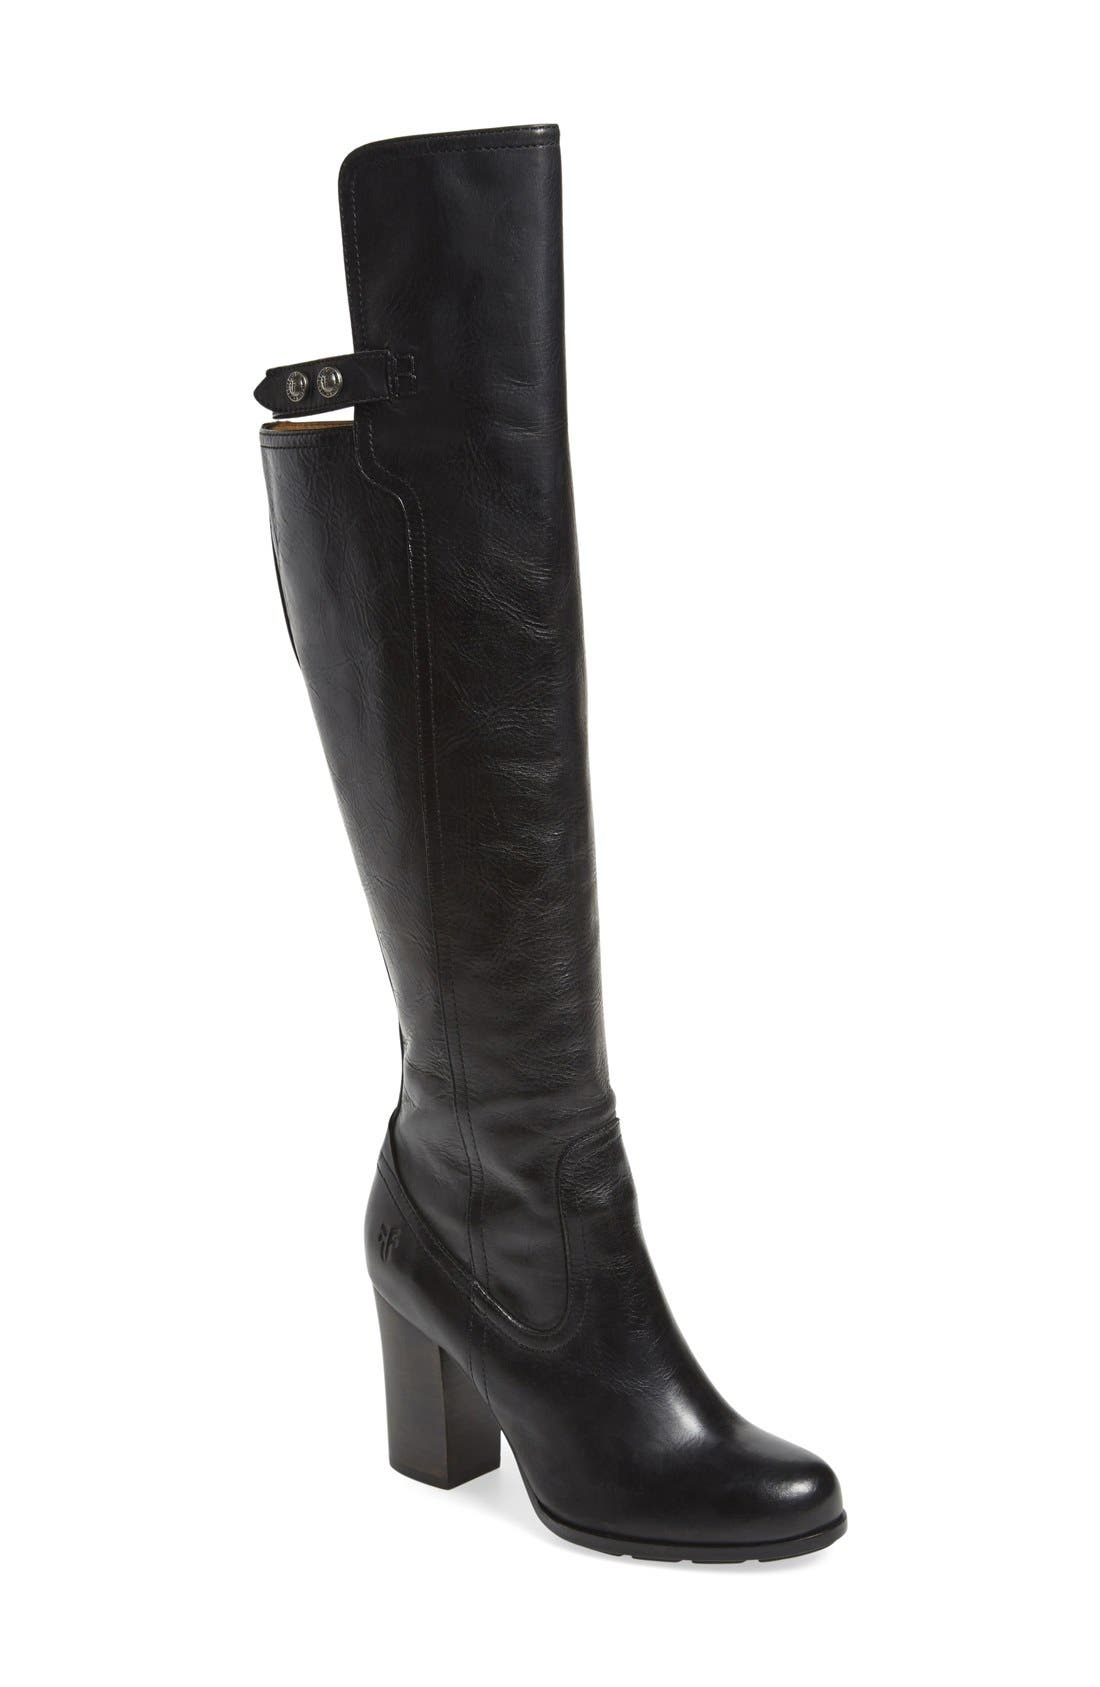 Main Image - Frye 'Parker' Over the Knee Boot (Women)